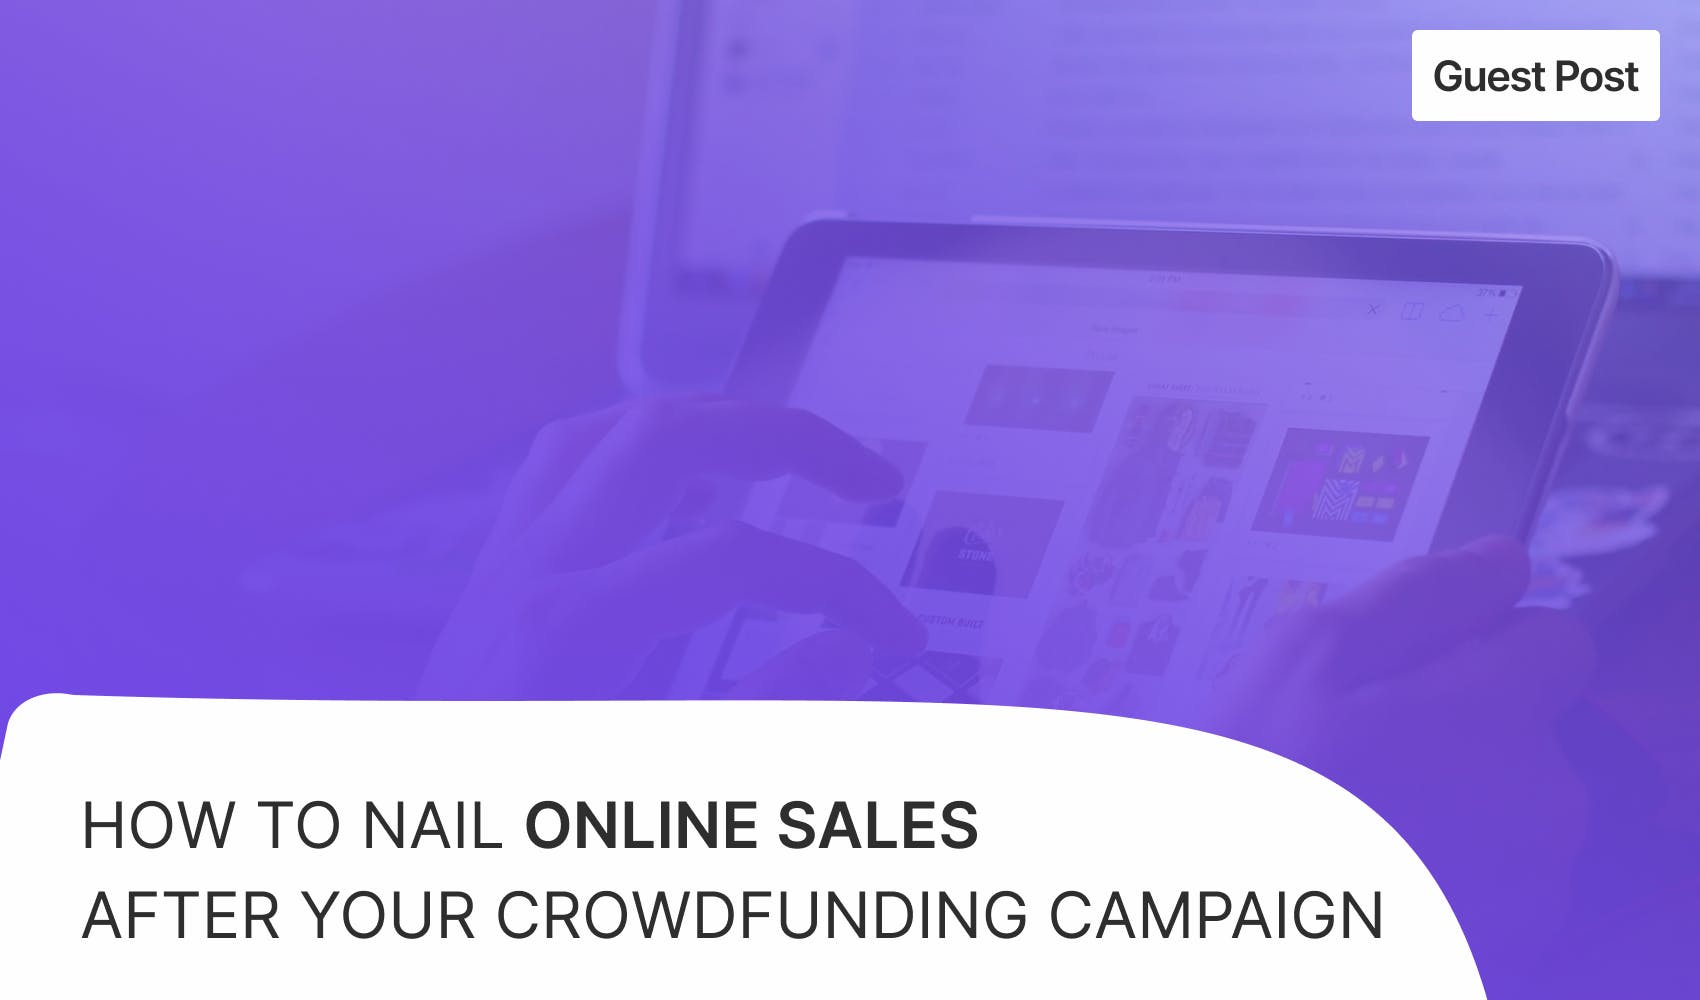 How to nail online sales after your crowdfunding campaign